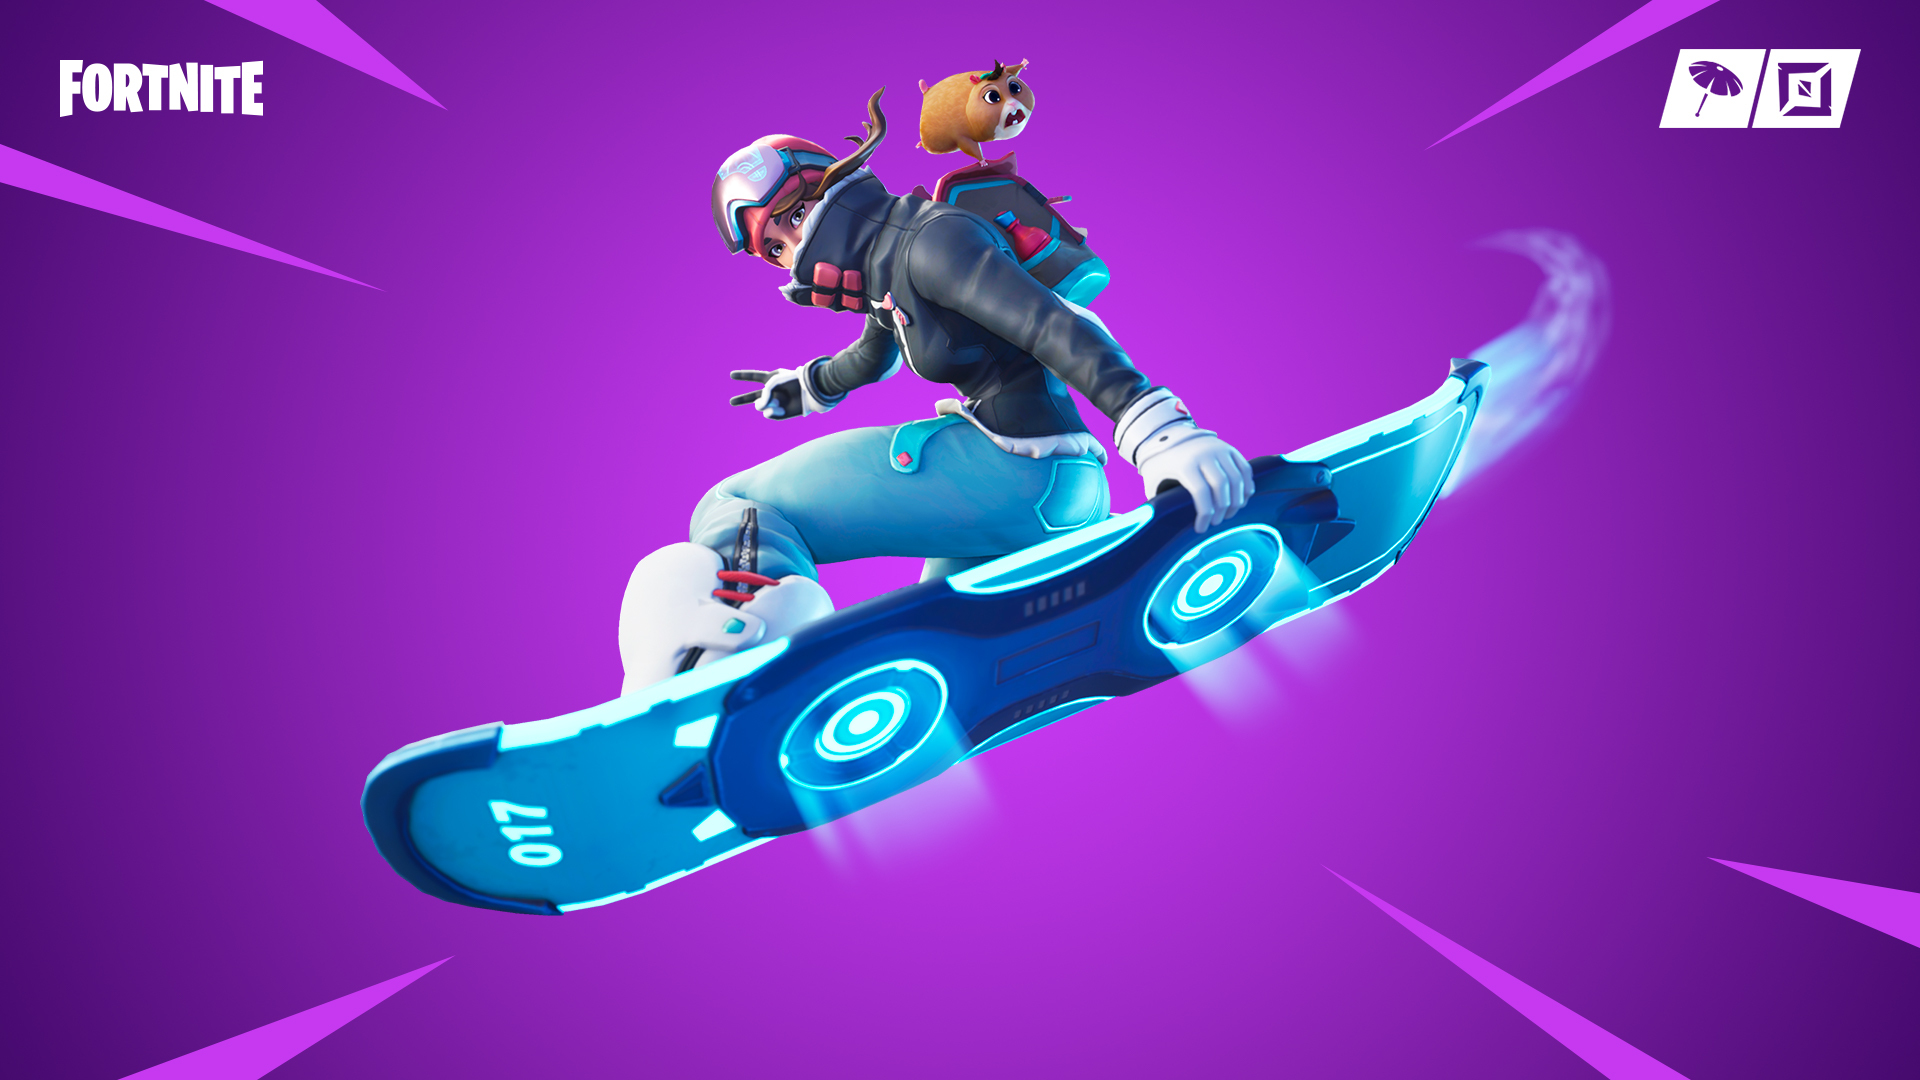 Fortnite's latest patch introduces a hoverboard